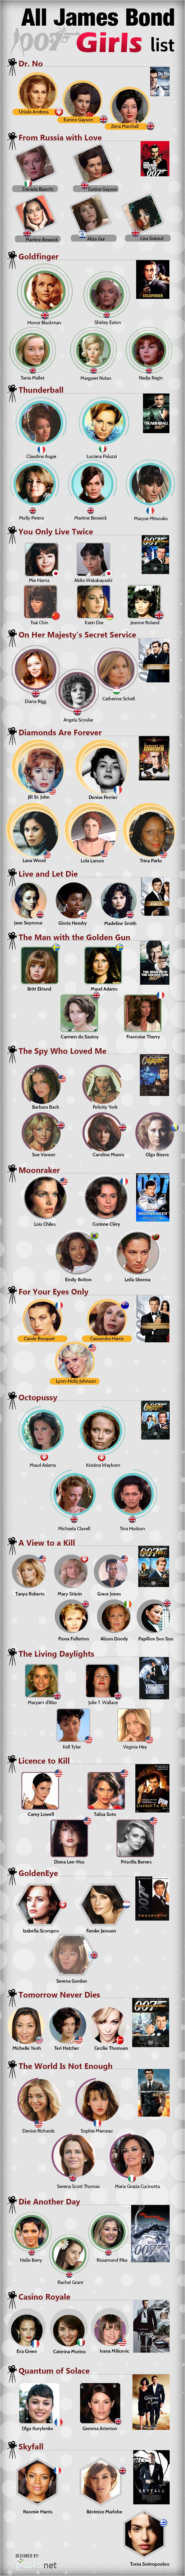 All James Bond Girls List Infographic